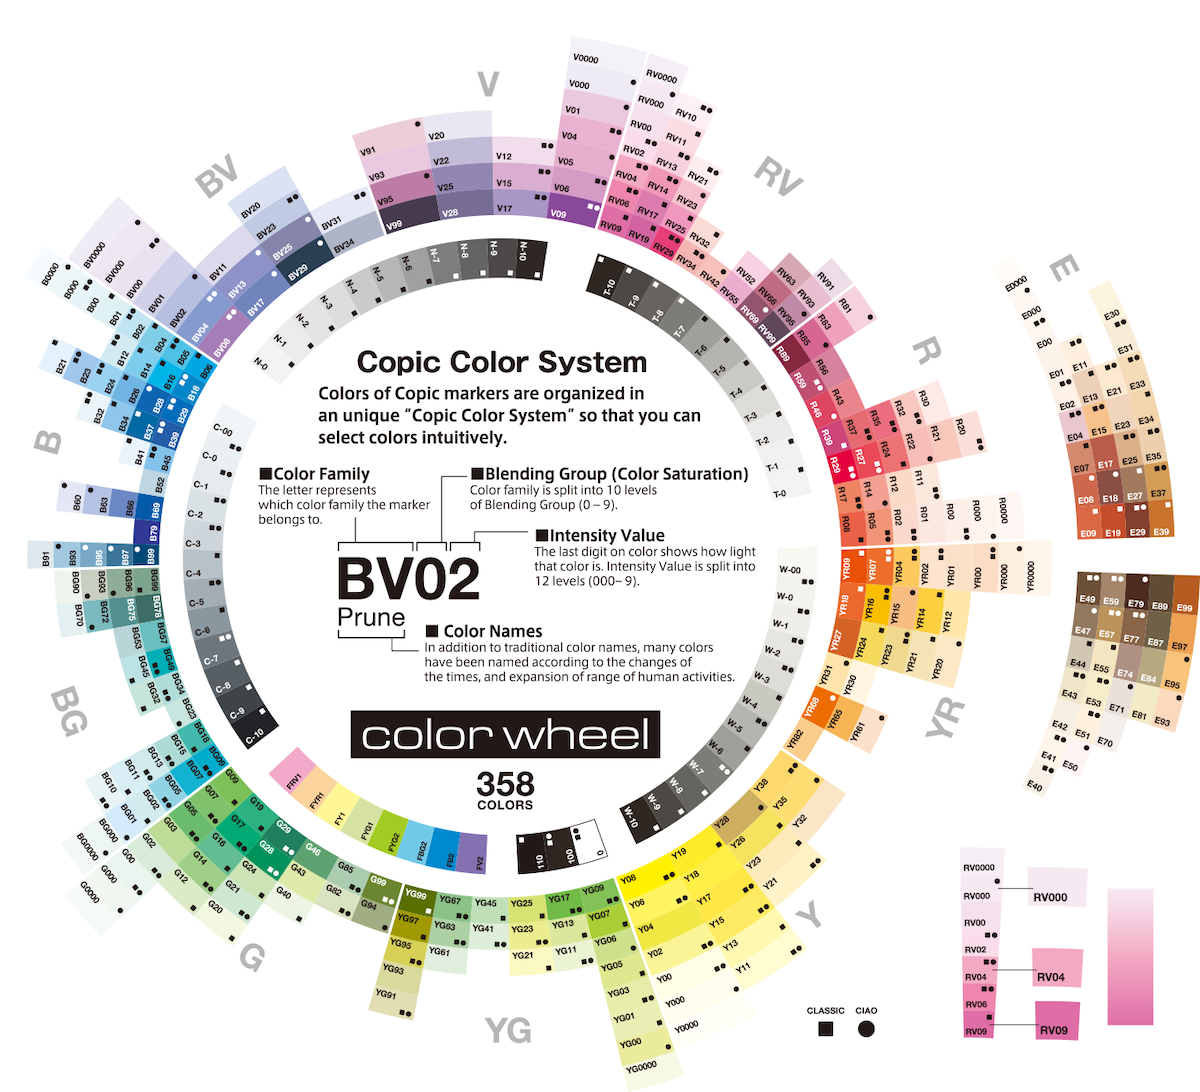 Copic Color System